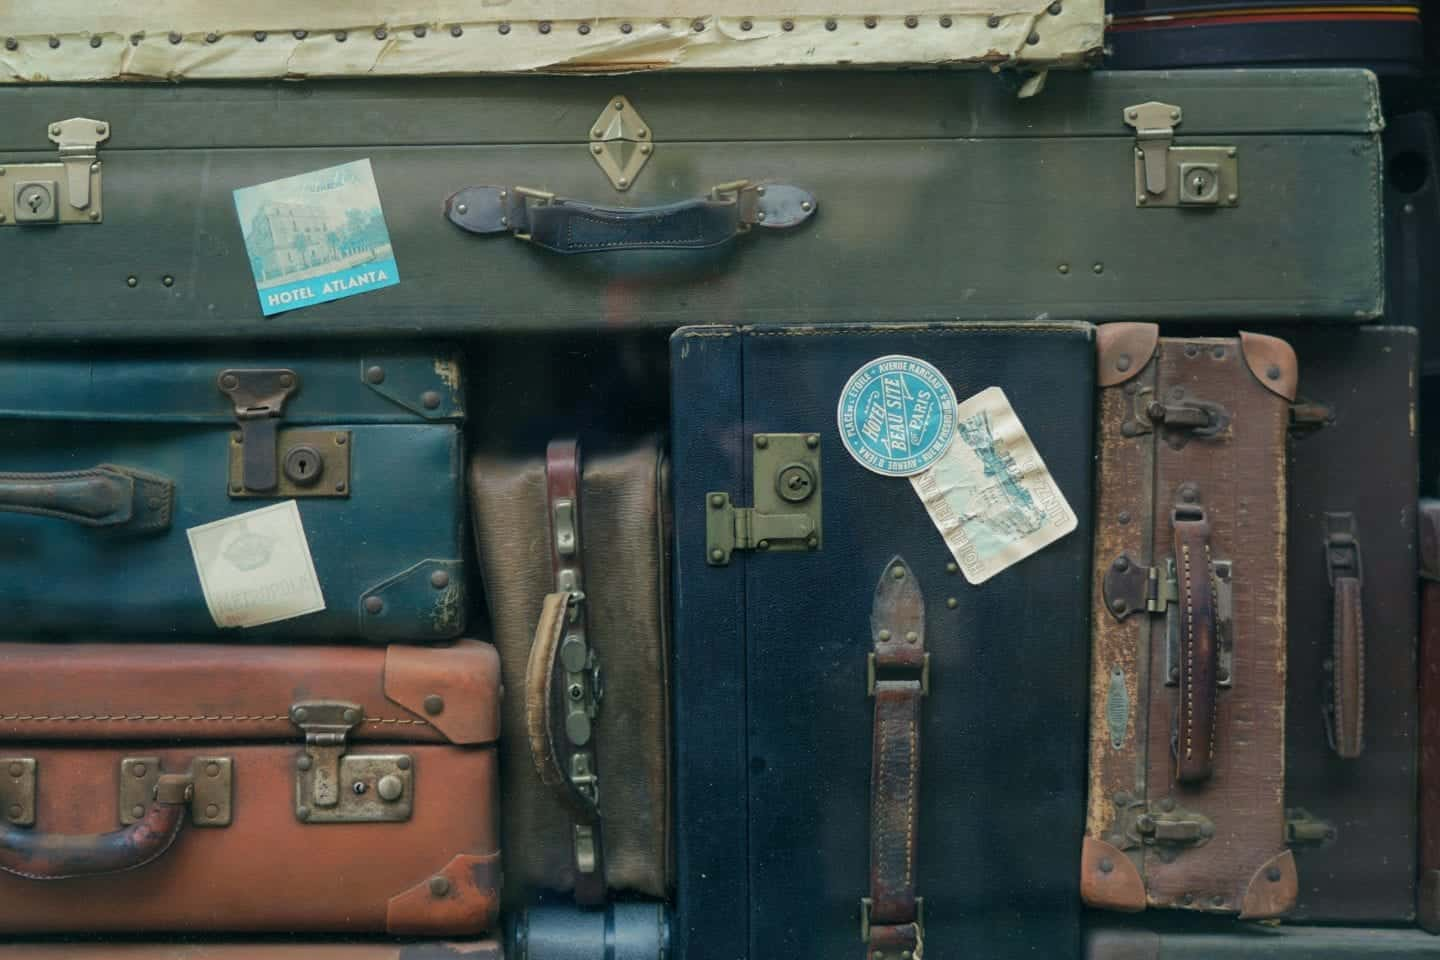 The Ultimate Packing Checklist: What Should You Bring When Travelling with Your Friends?